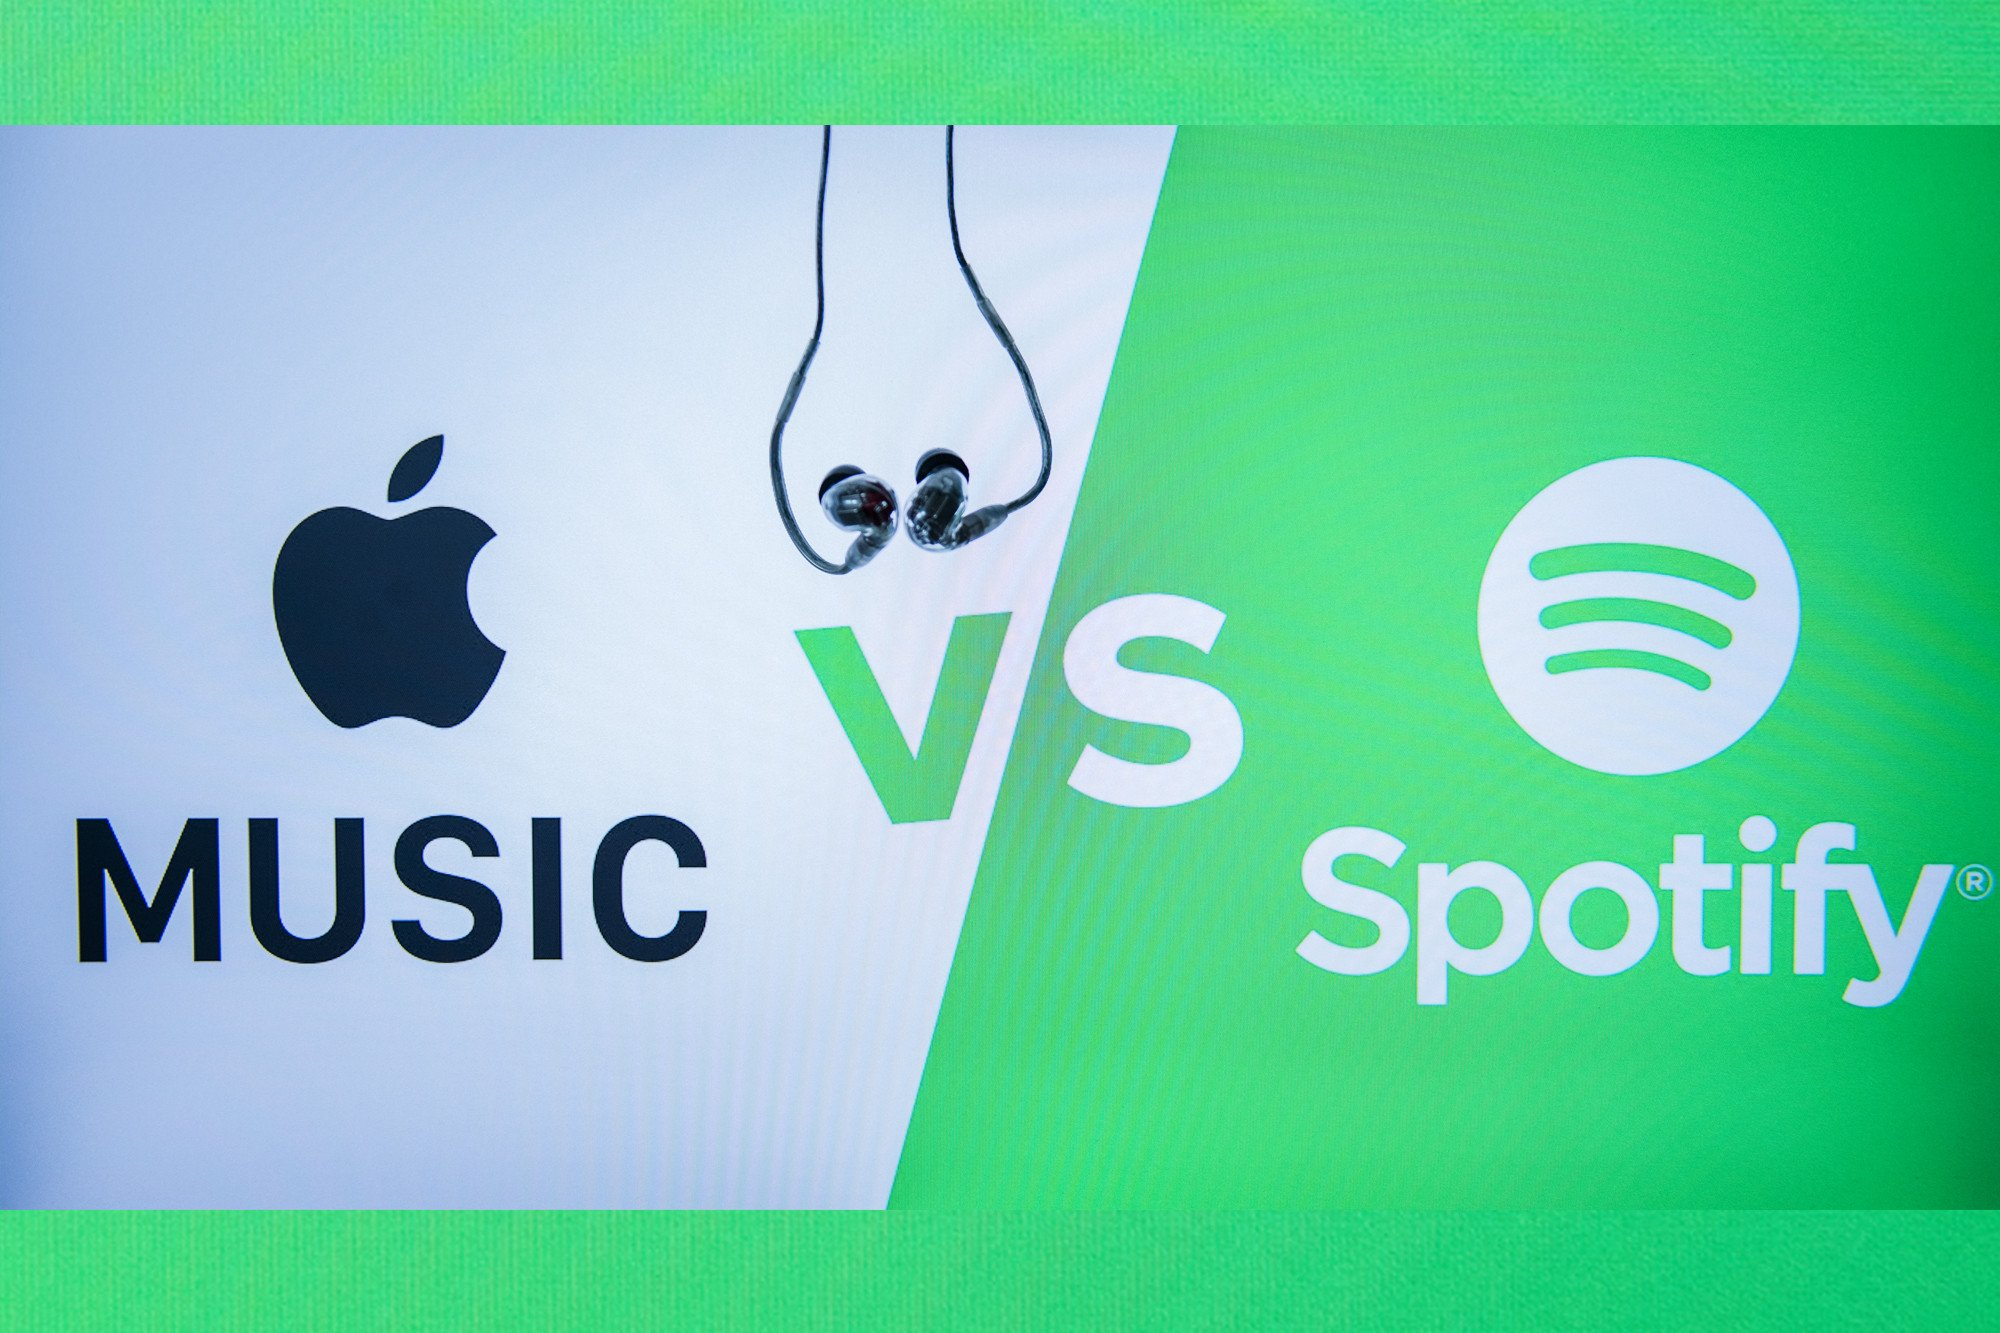 Apple Music could dethrone Spotify by summer